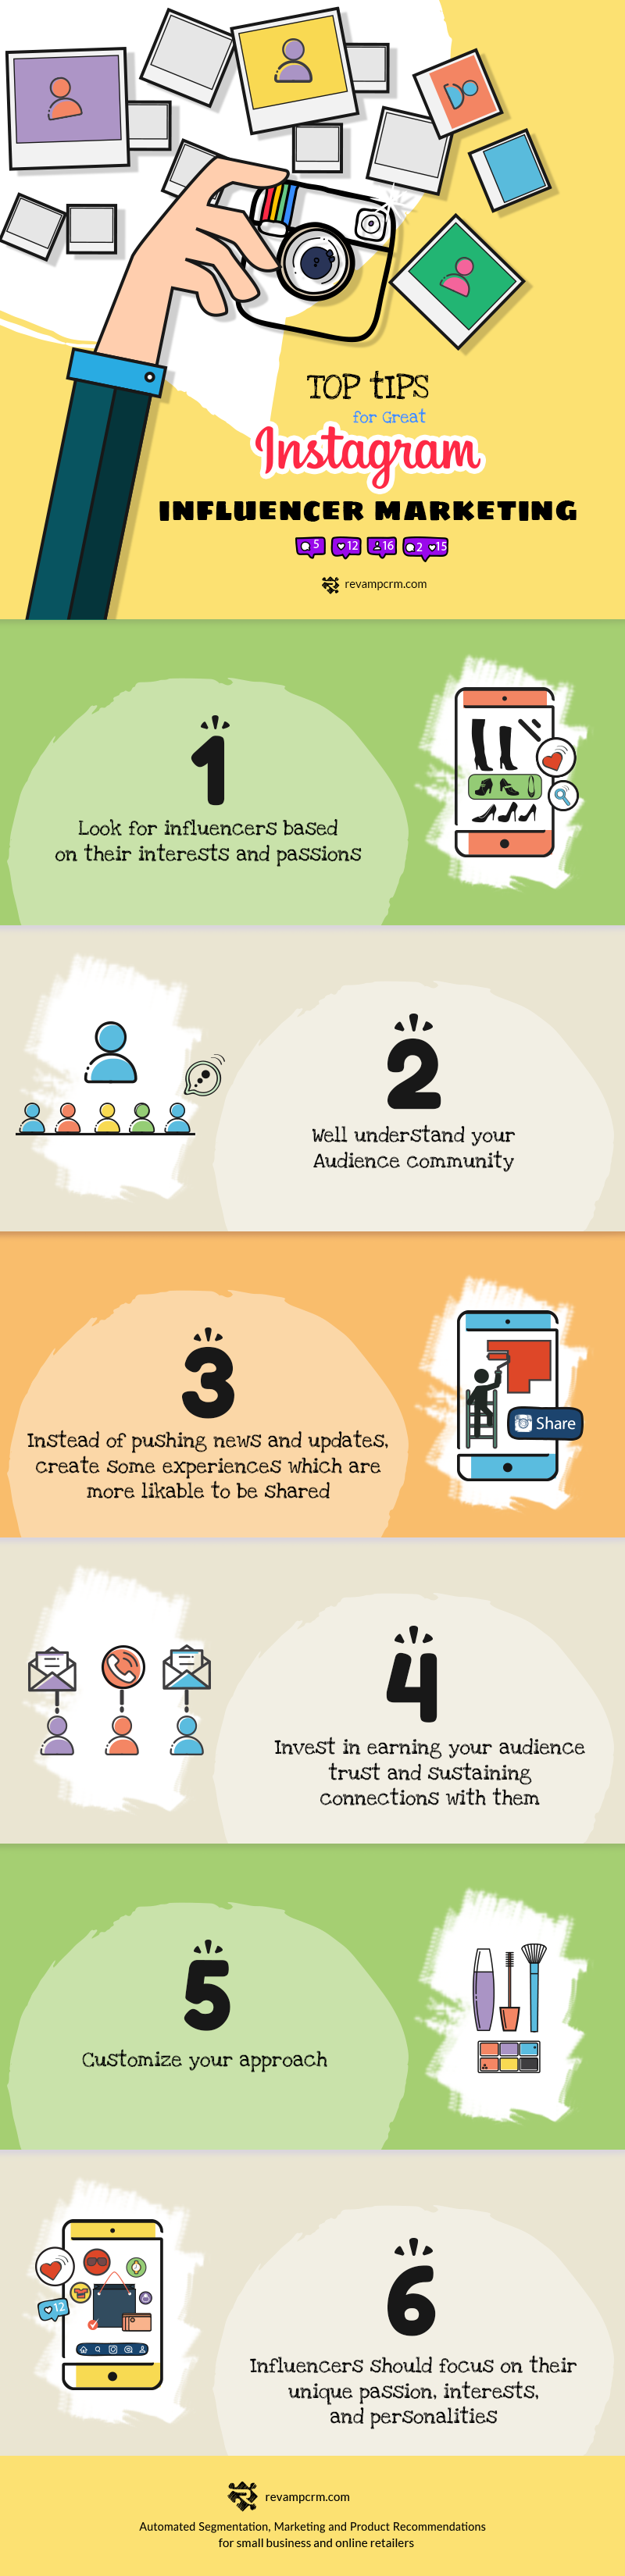 Top Tips for Instagram Influencer marketing - #infographic